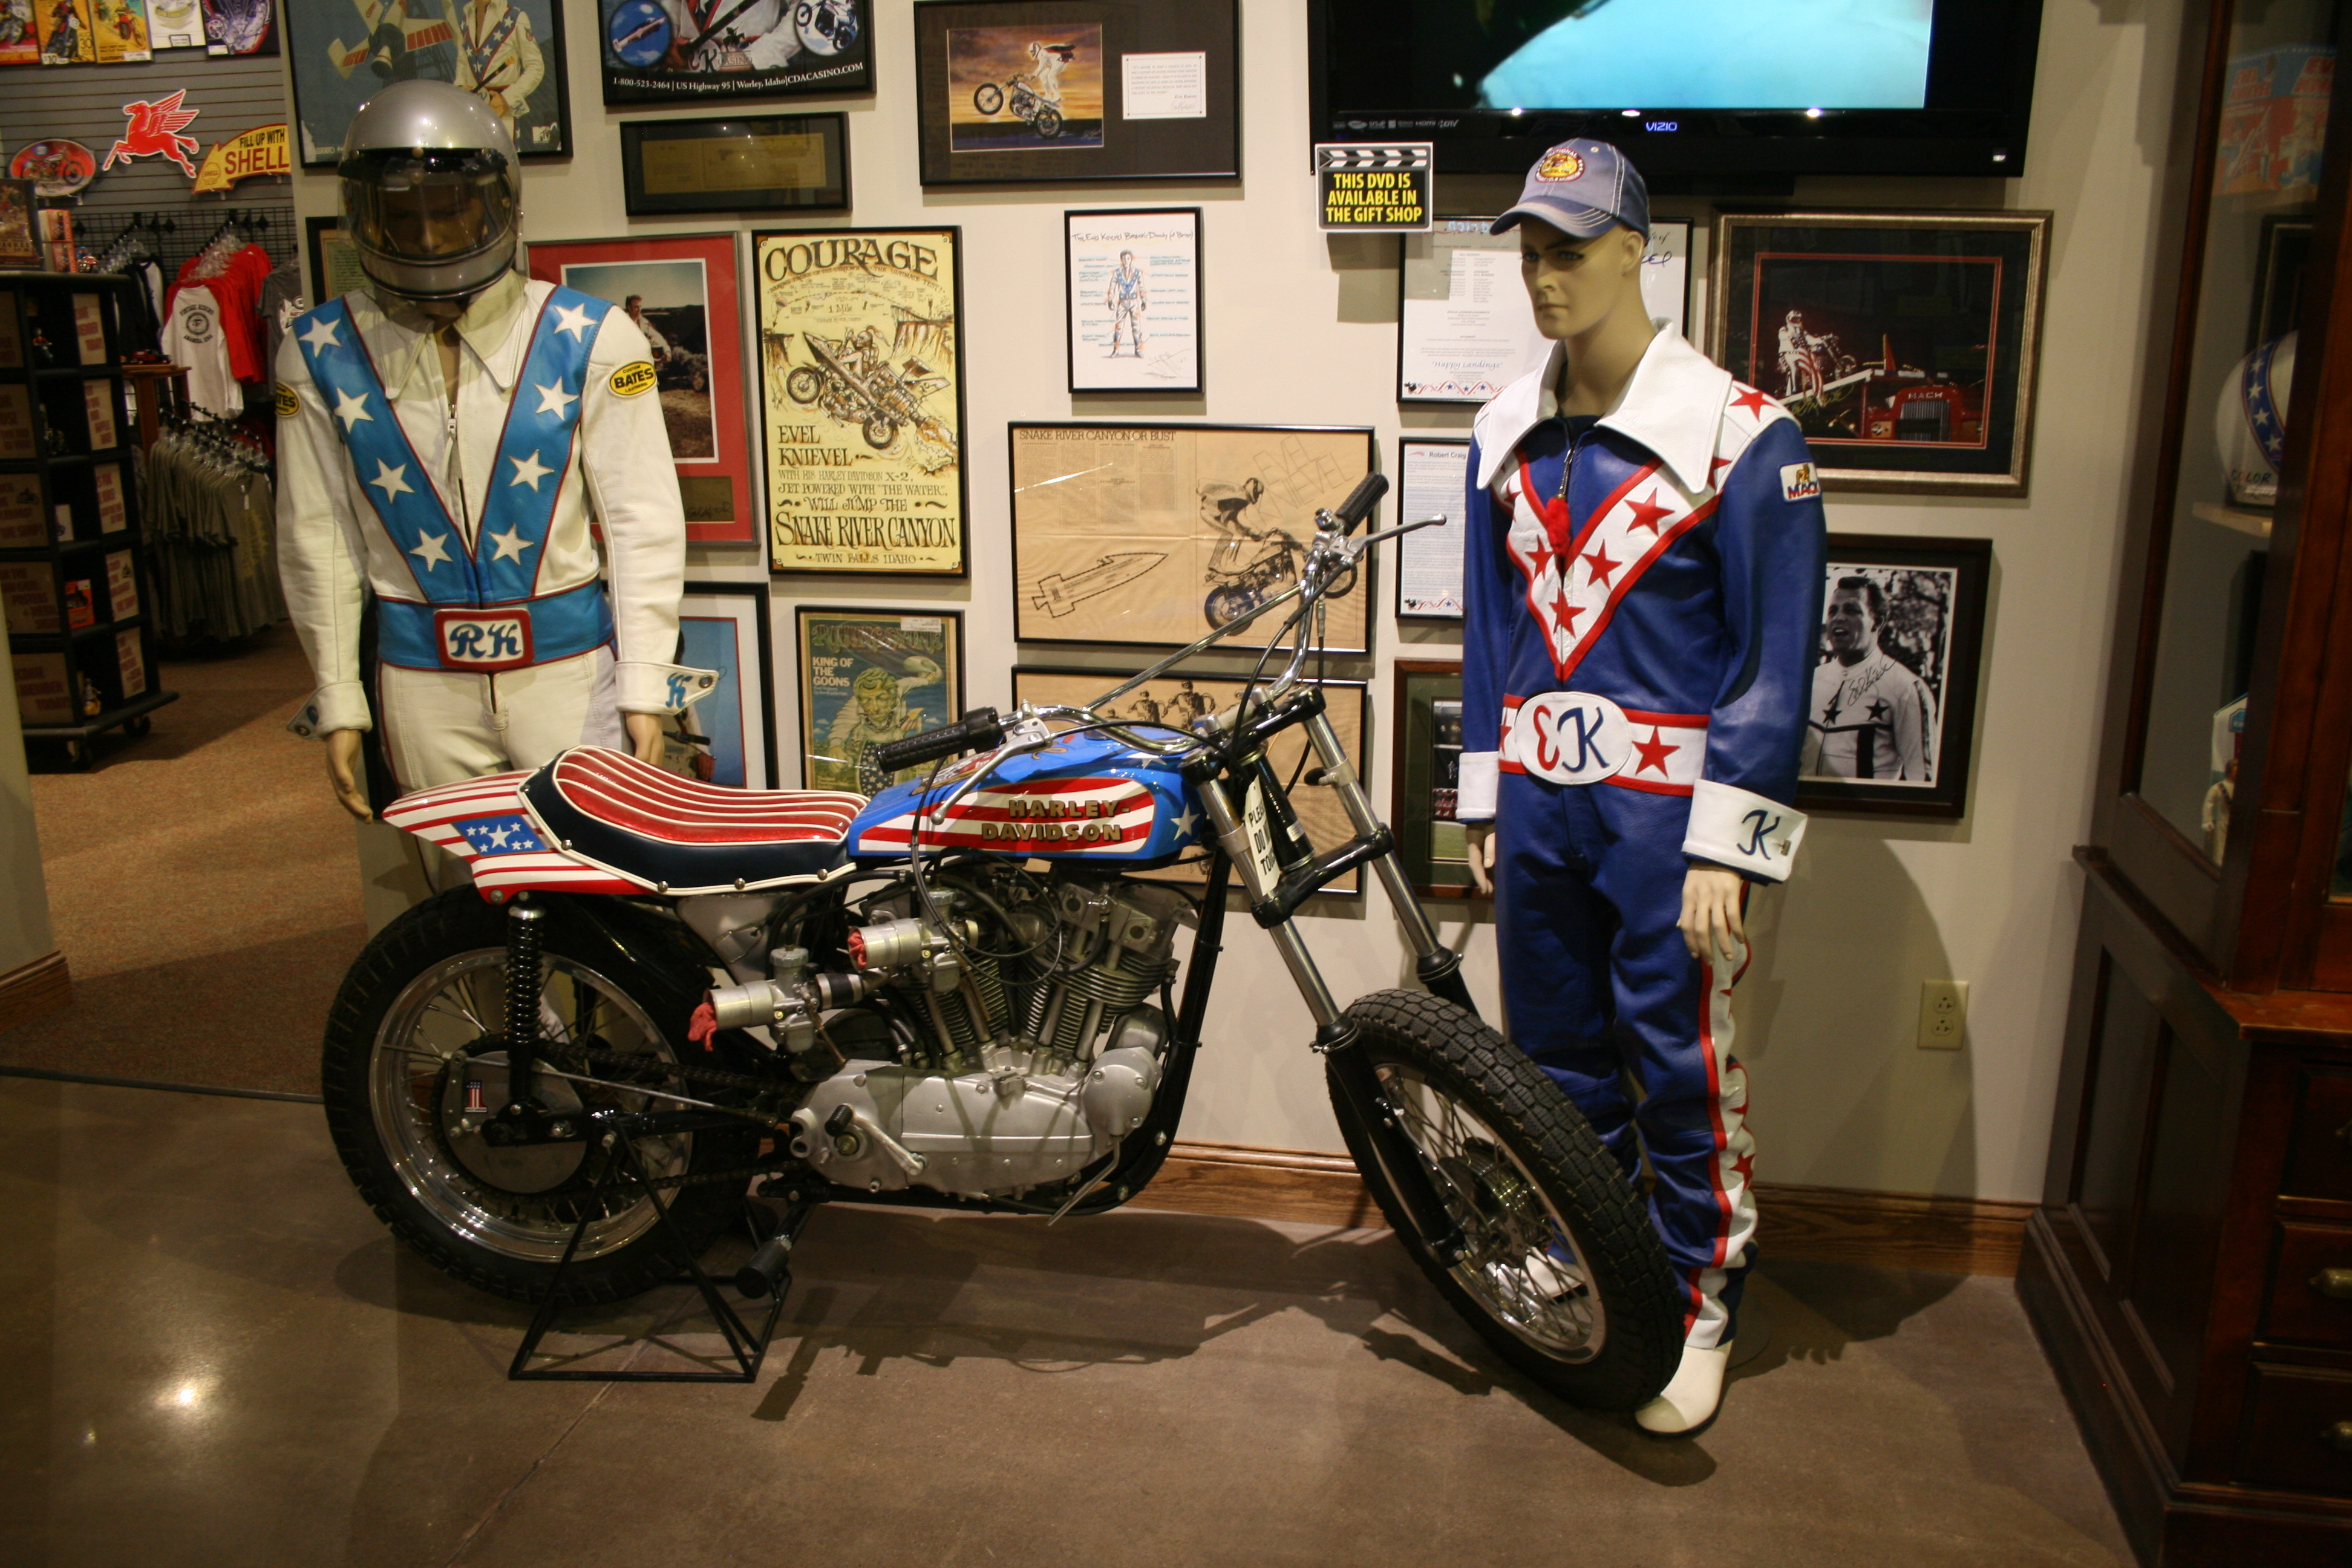 Evel Knievel 1970 Harley Davidson Xr750 Jump Bike By: Iowa Museum Is A 'field Of Dreams' For Motorcycling